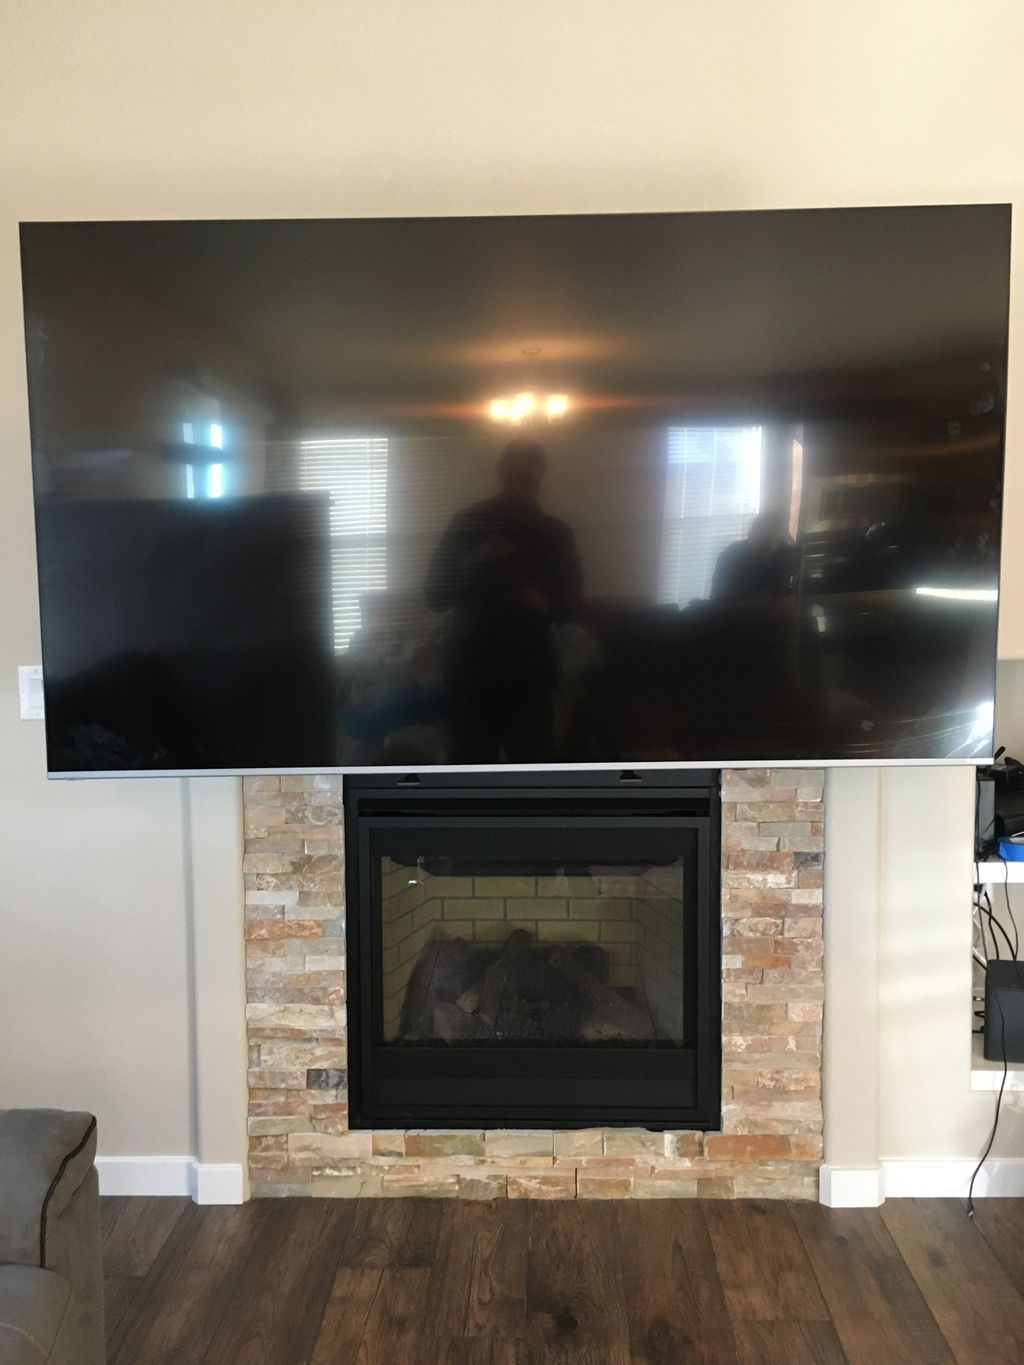 75 inch TV installation with a